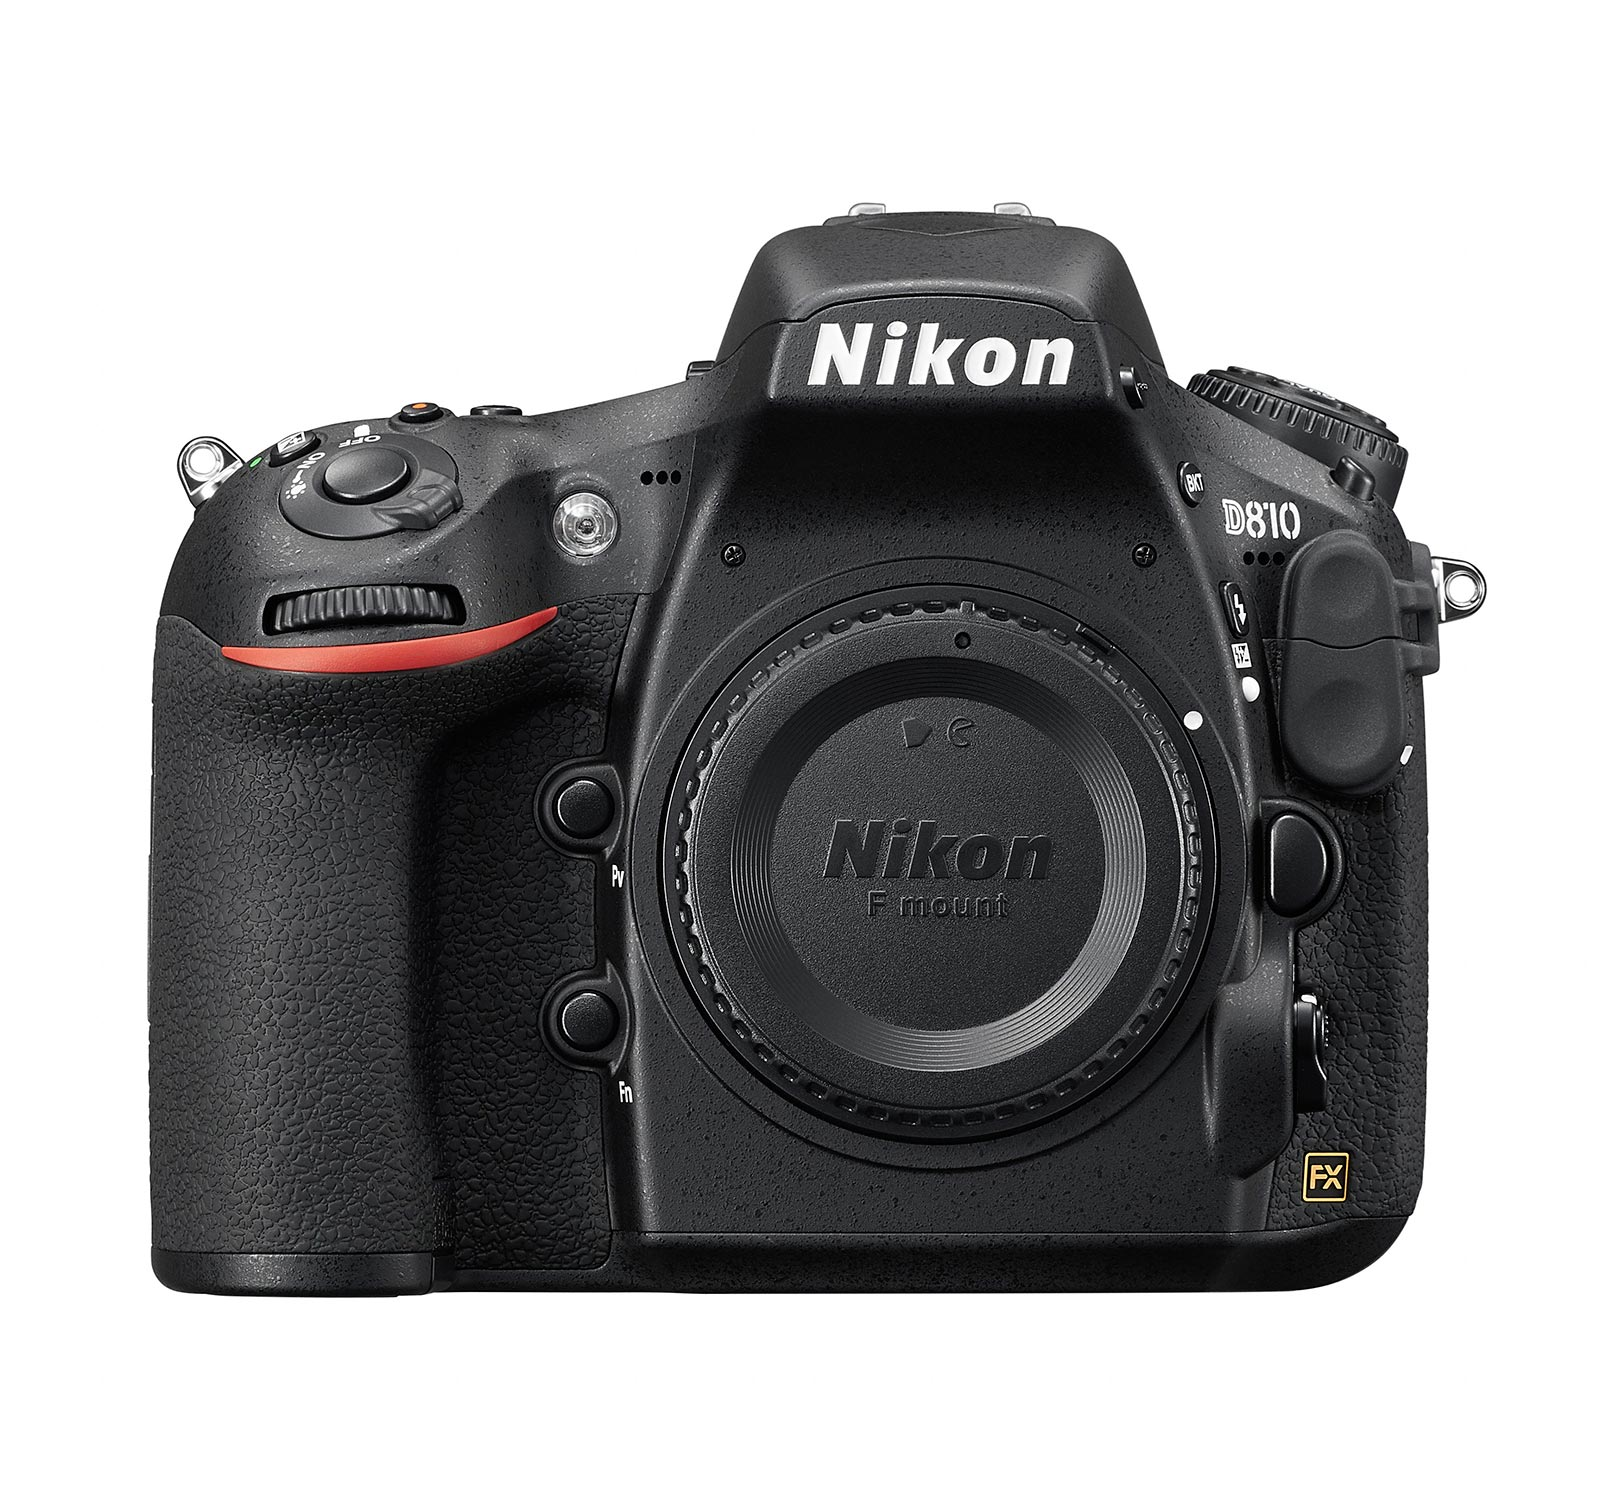 Nikon D810 (Body Only) 36.3-megapixel Digital SLR